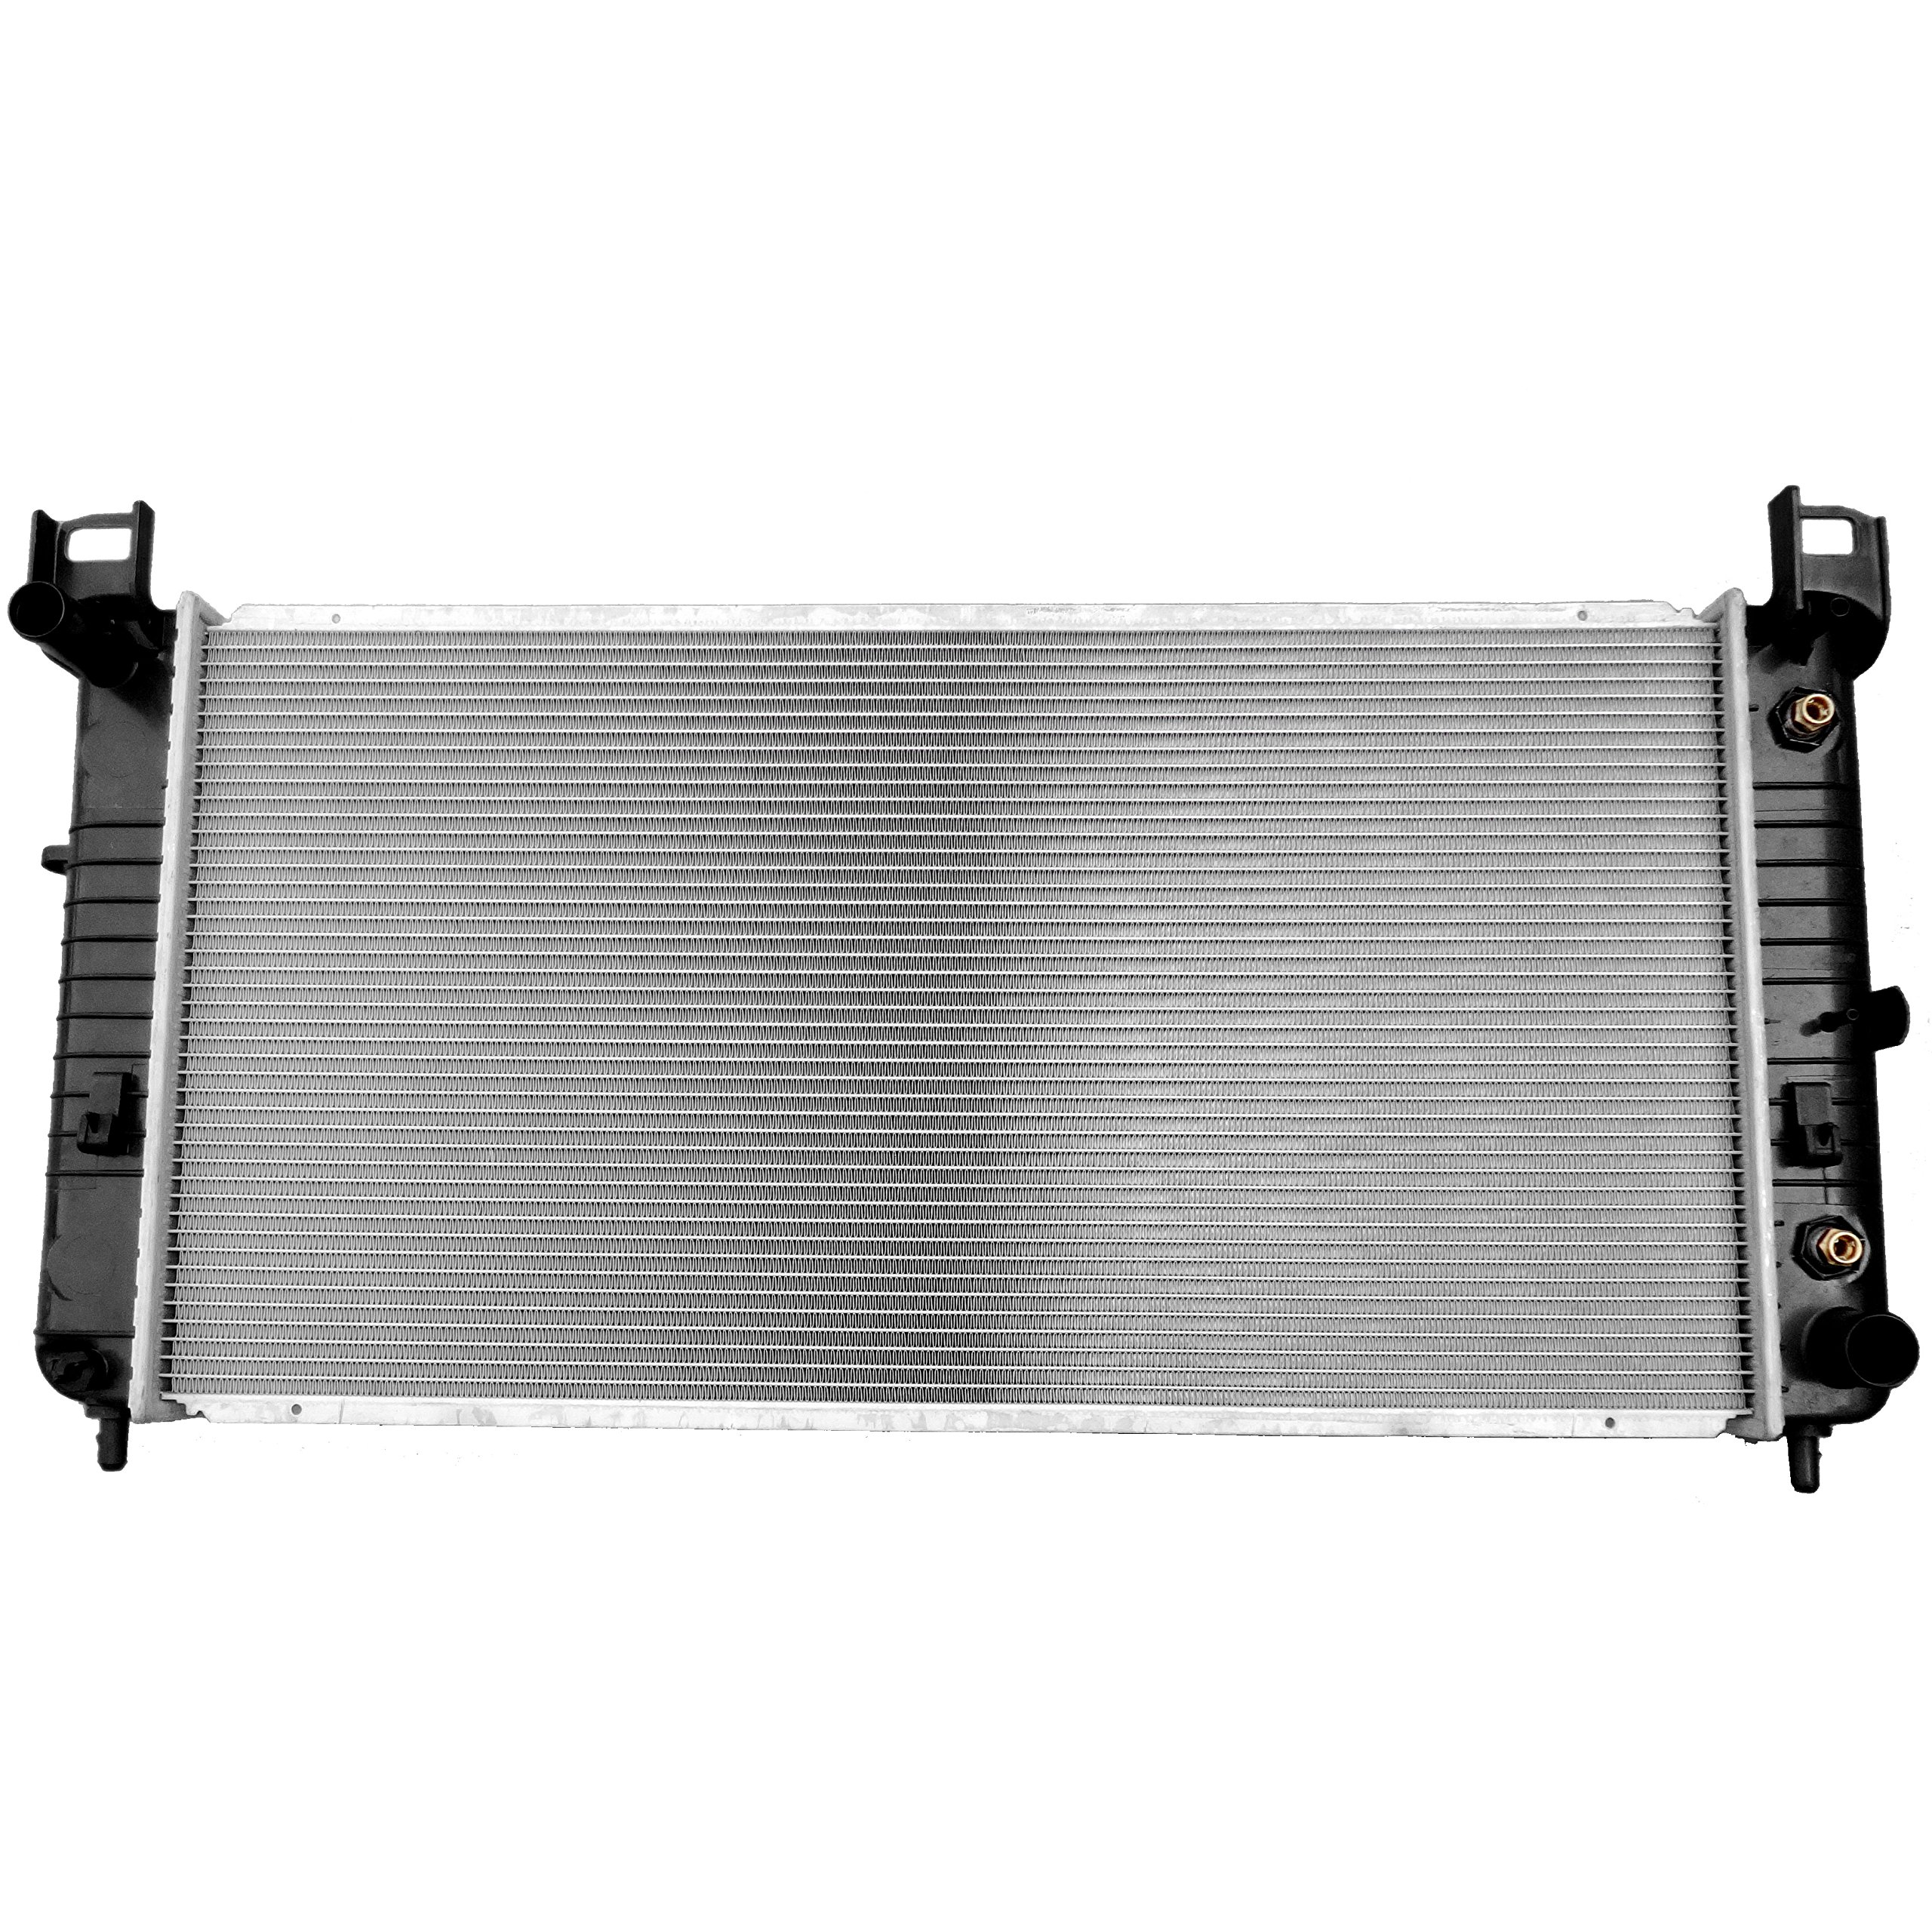 Scitoo Radiator LR2921 for 2007-2014 Chevrolet Tahoe 5.3L 2008-2013 GMC Yukon 6.0L by SCITOO